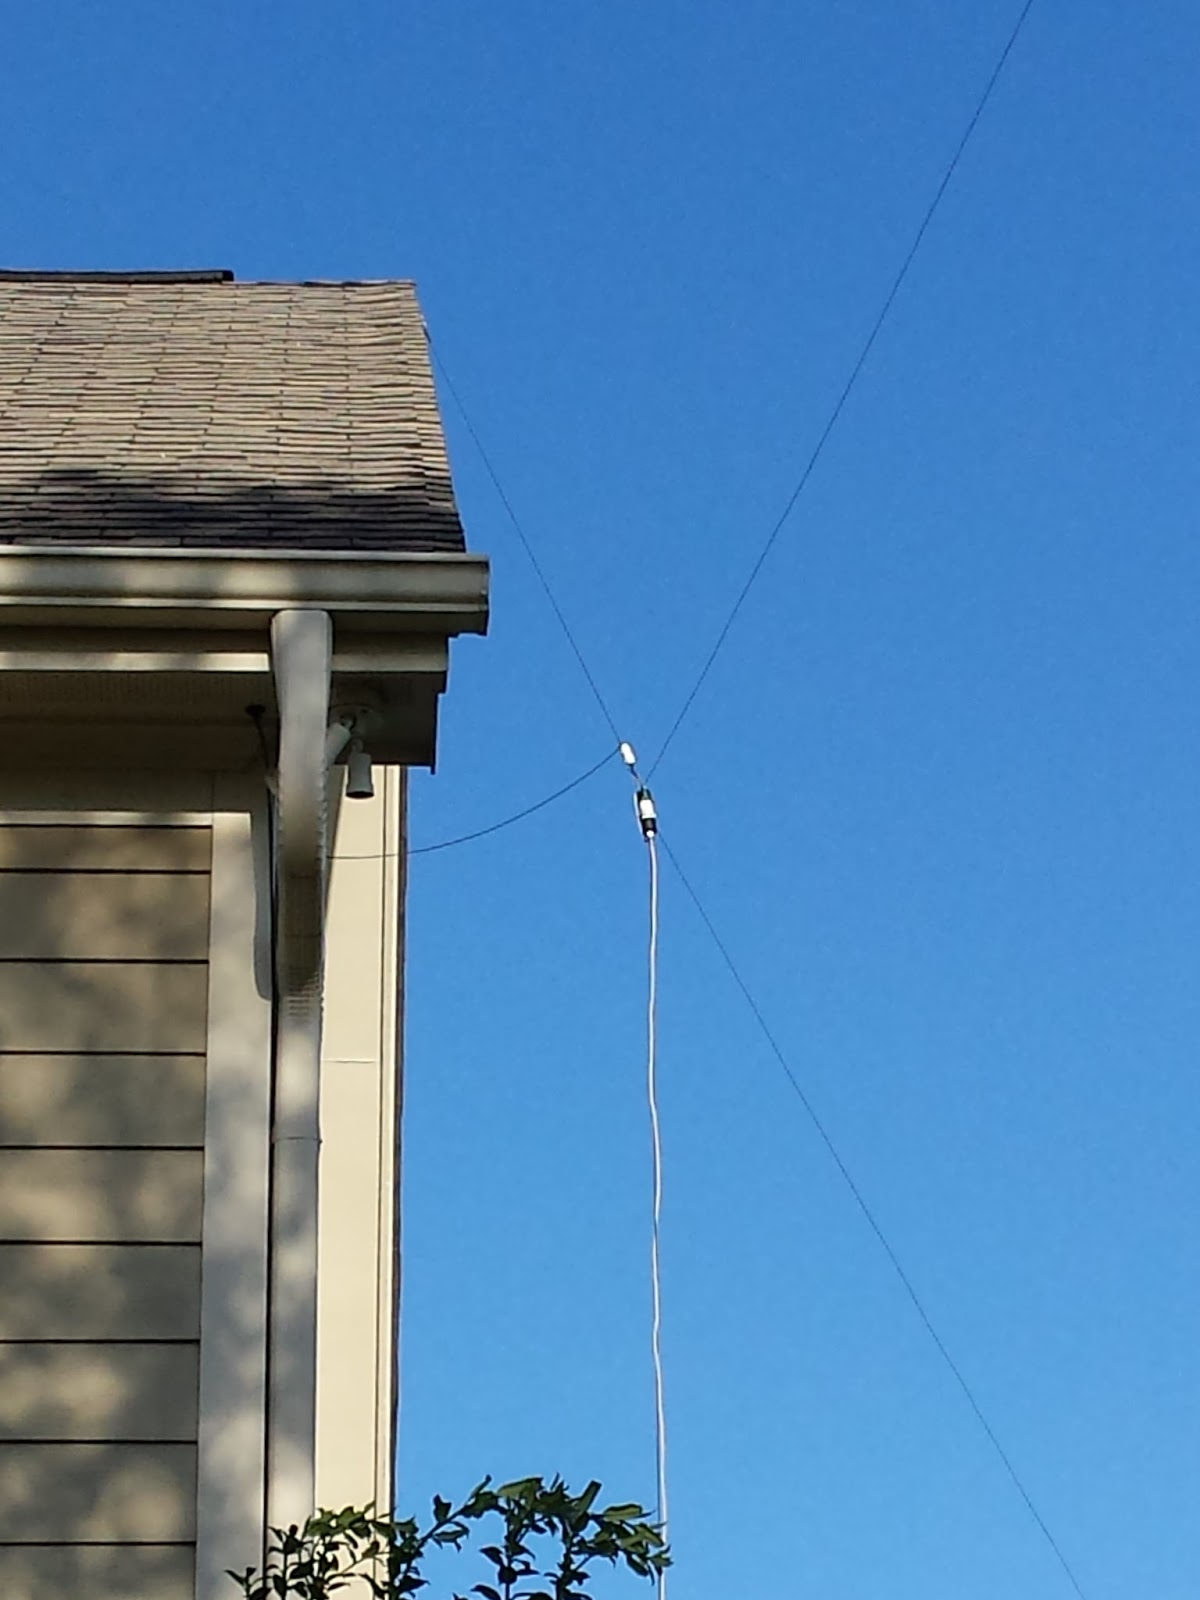 Are not Carolina windom amateur radio antenna confirm. join